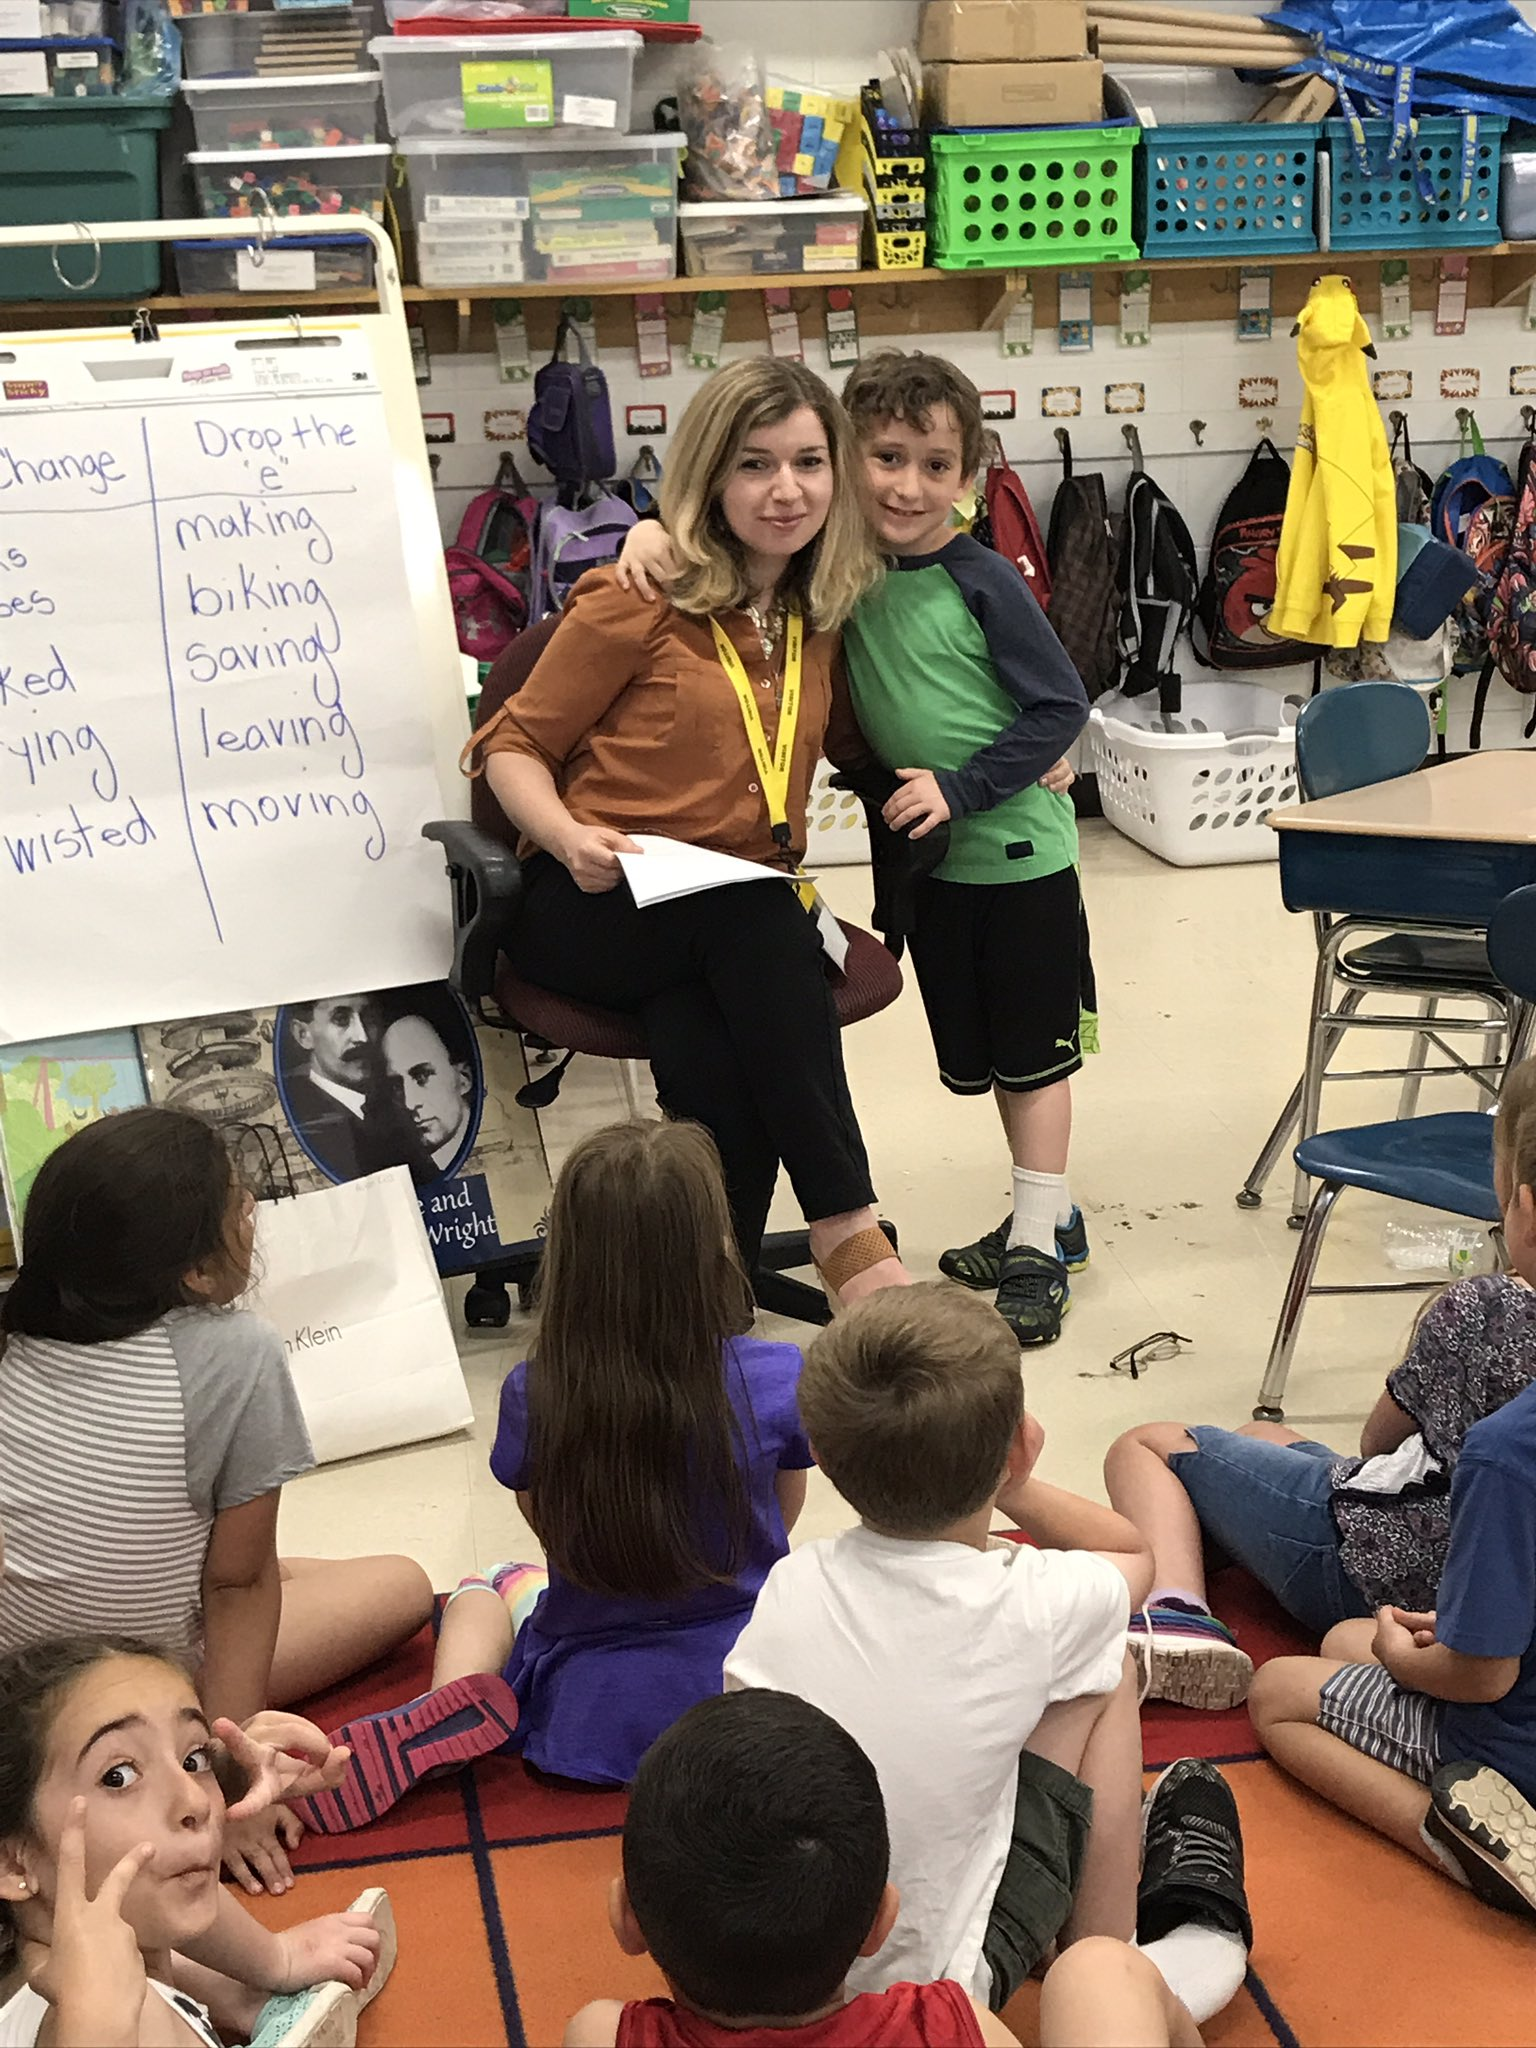 We love having parent guest readers! Mrs. K. Shared a story that she wrote for her children! #iginspires https://t.co/xkhf2fs9ef